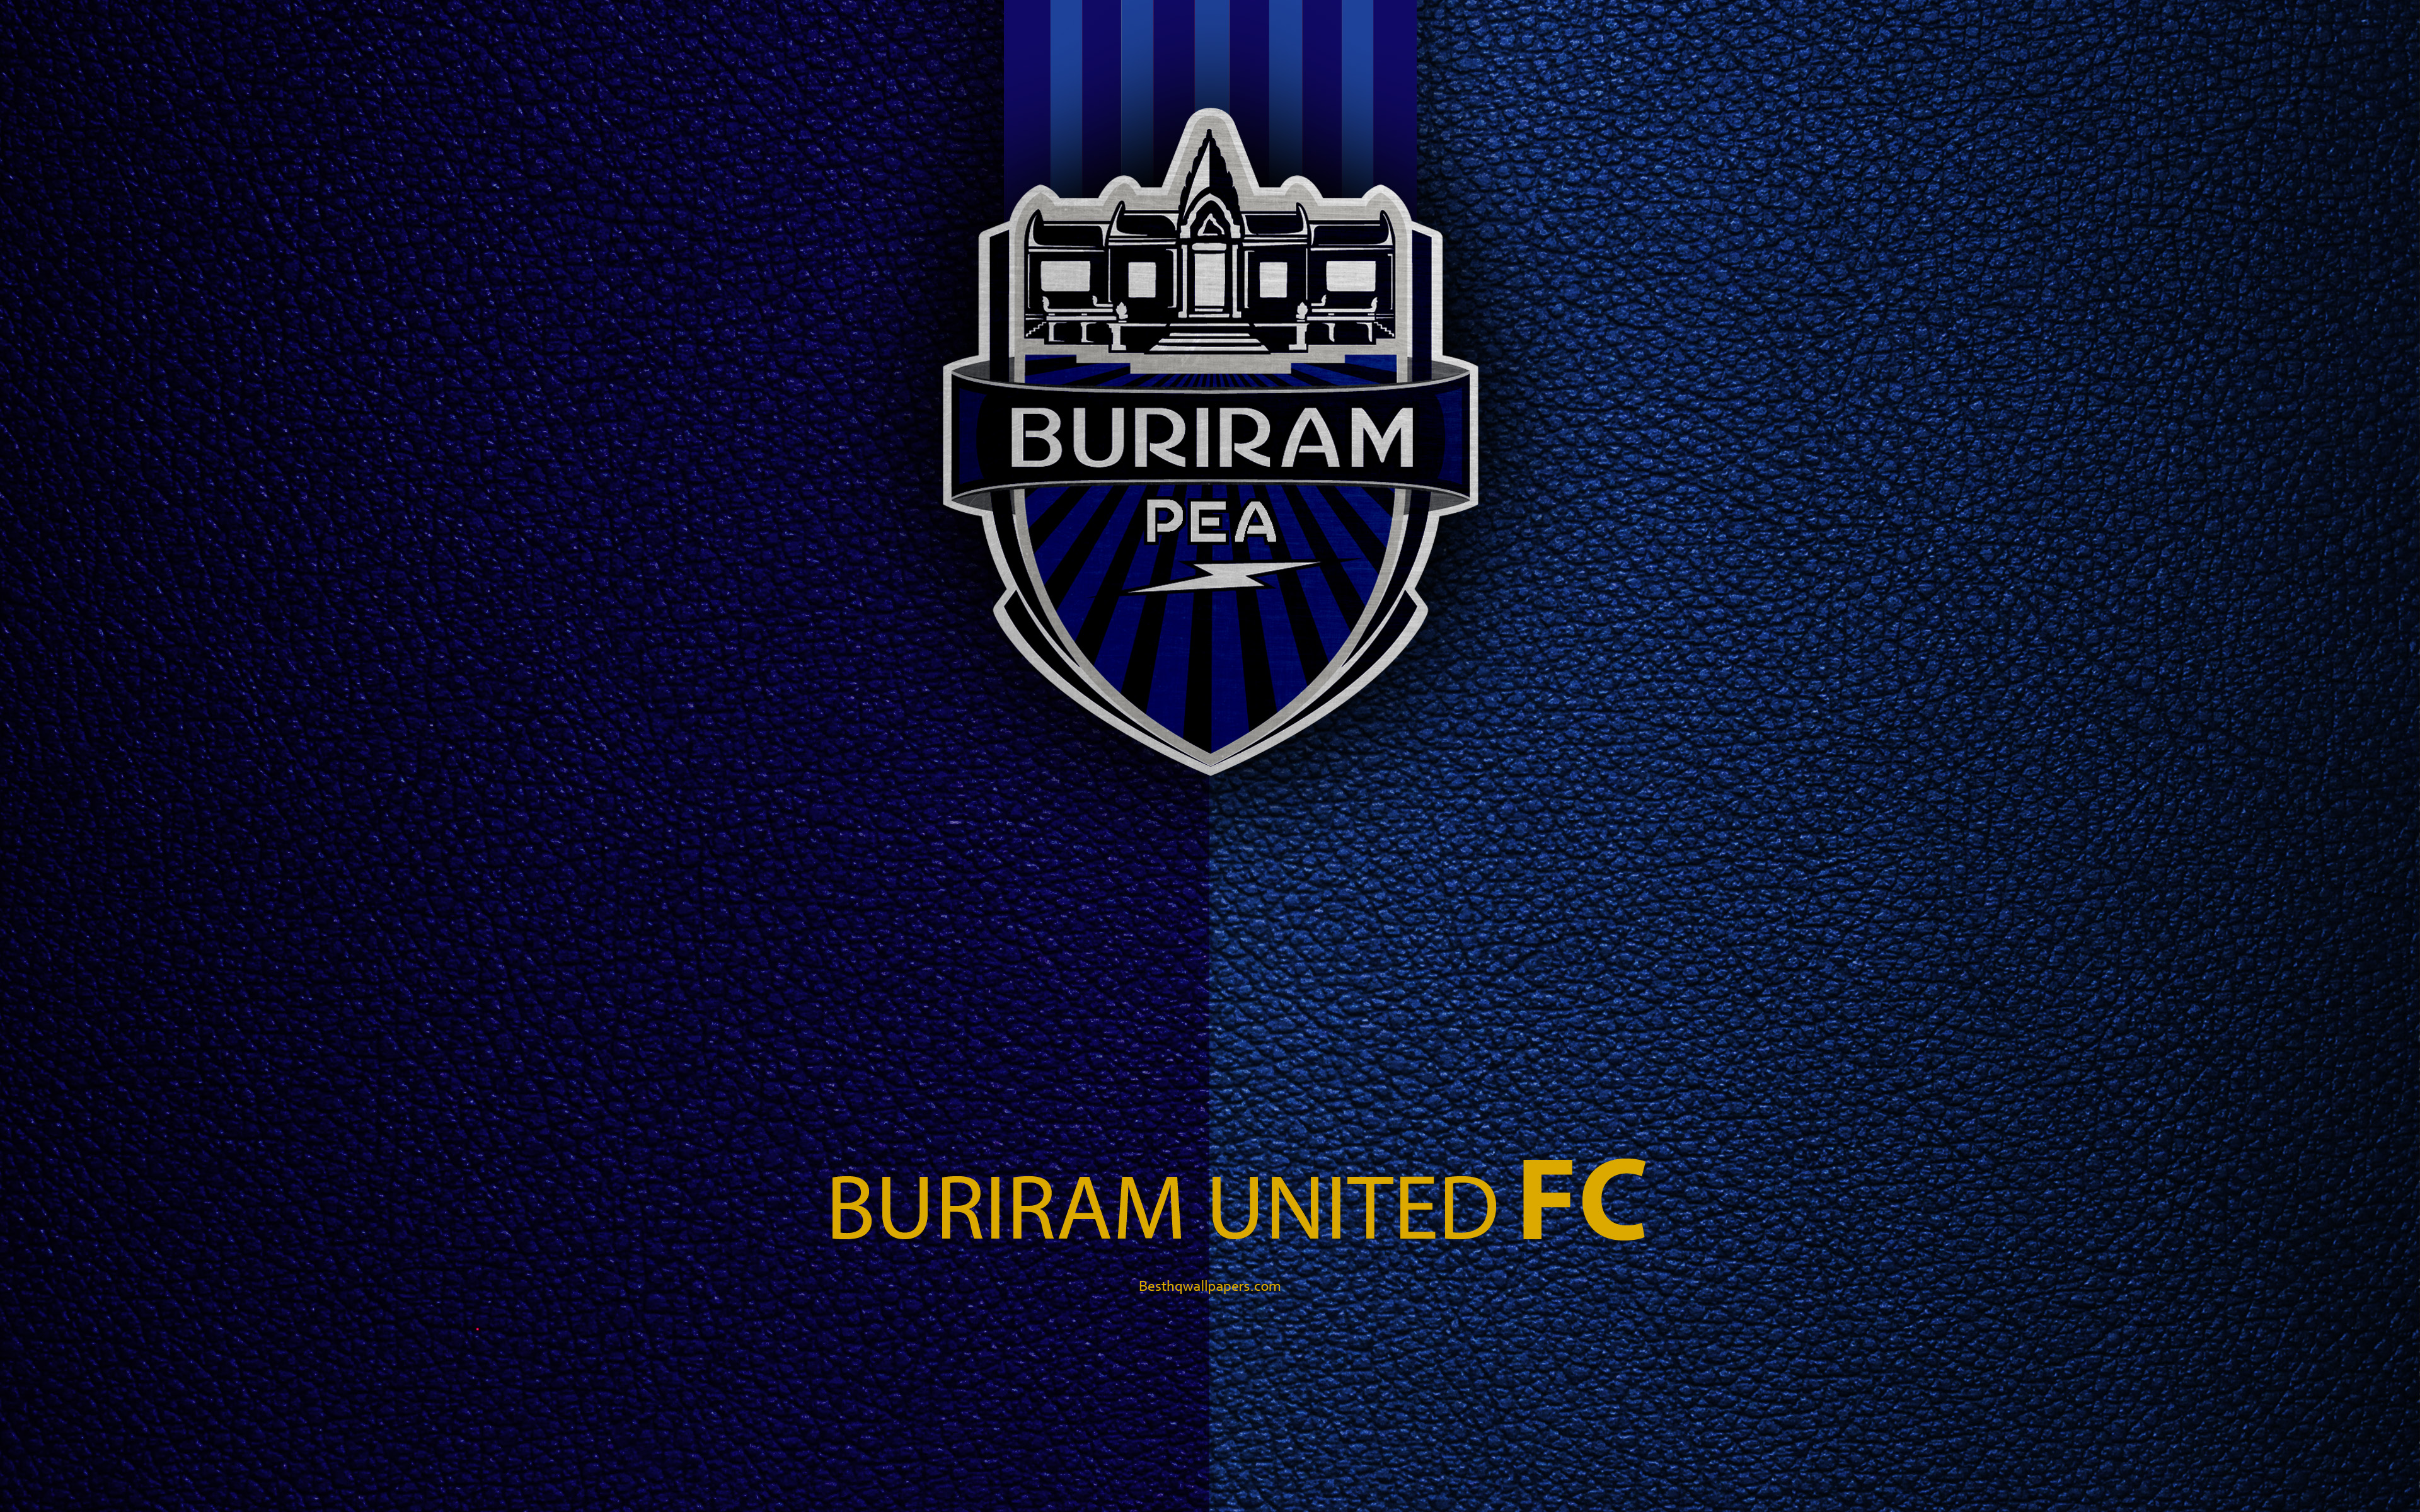 Download wallpapers Buriram United FC 4K Thai Football Club 3840x2400